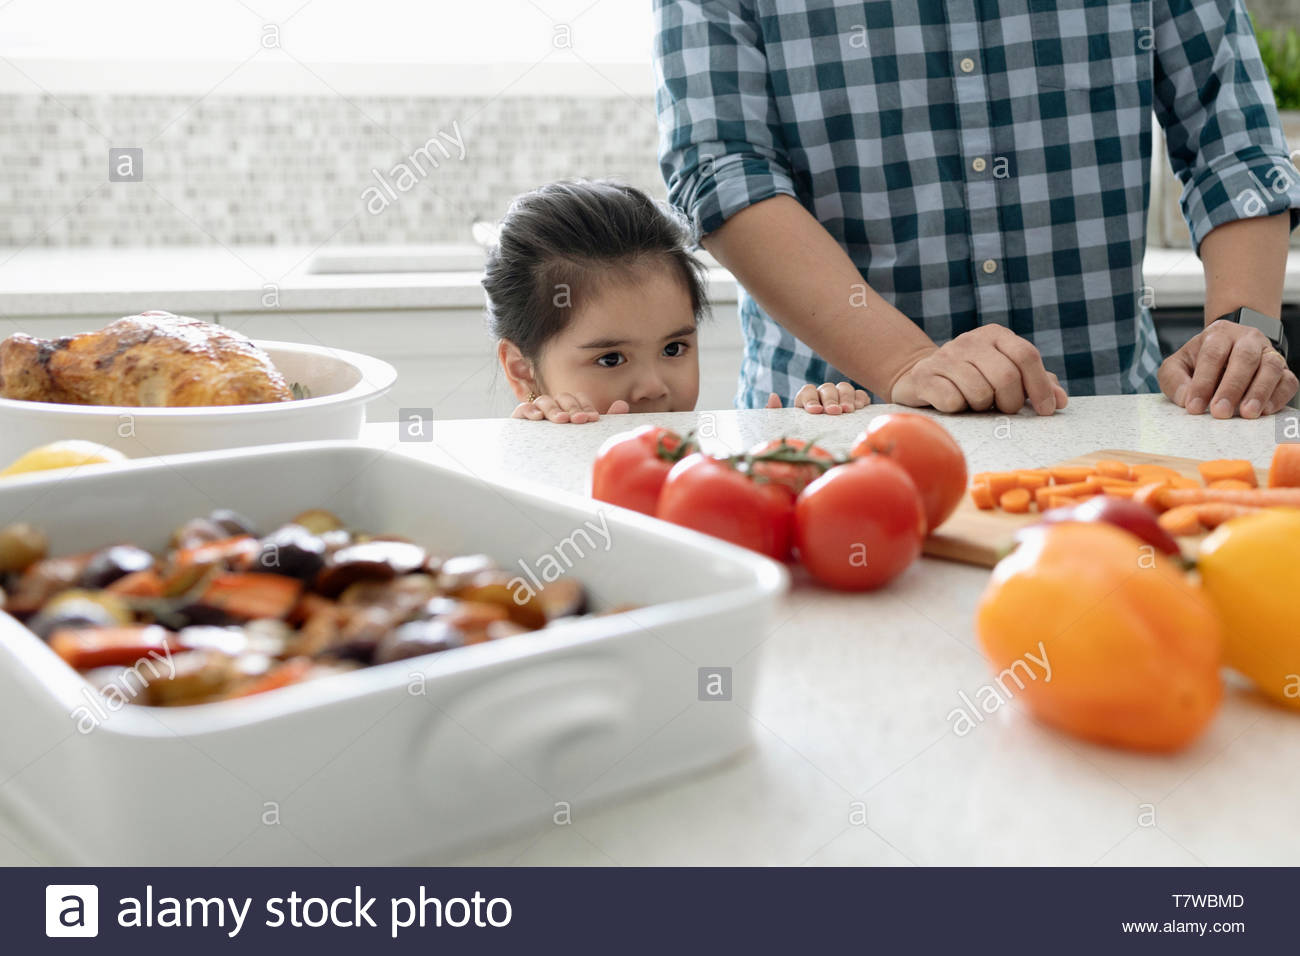 Daughter helping father cook in kitchen - Stock Image